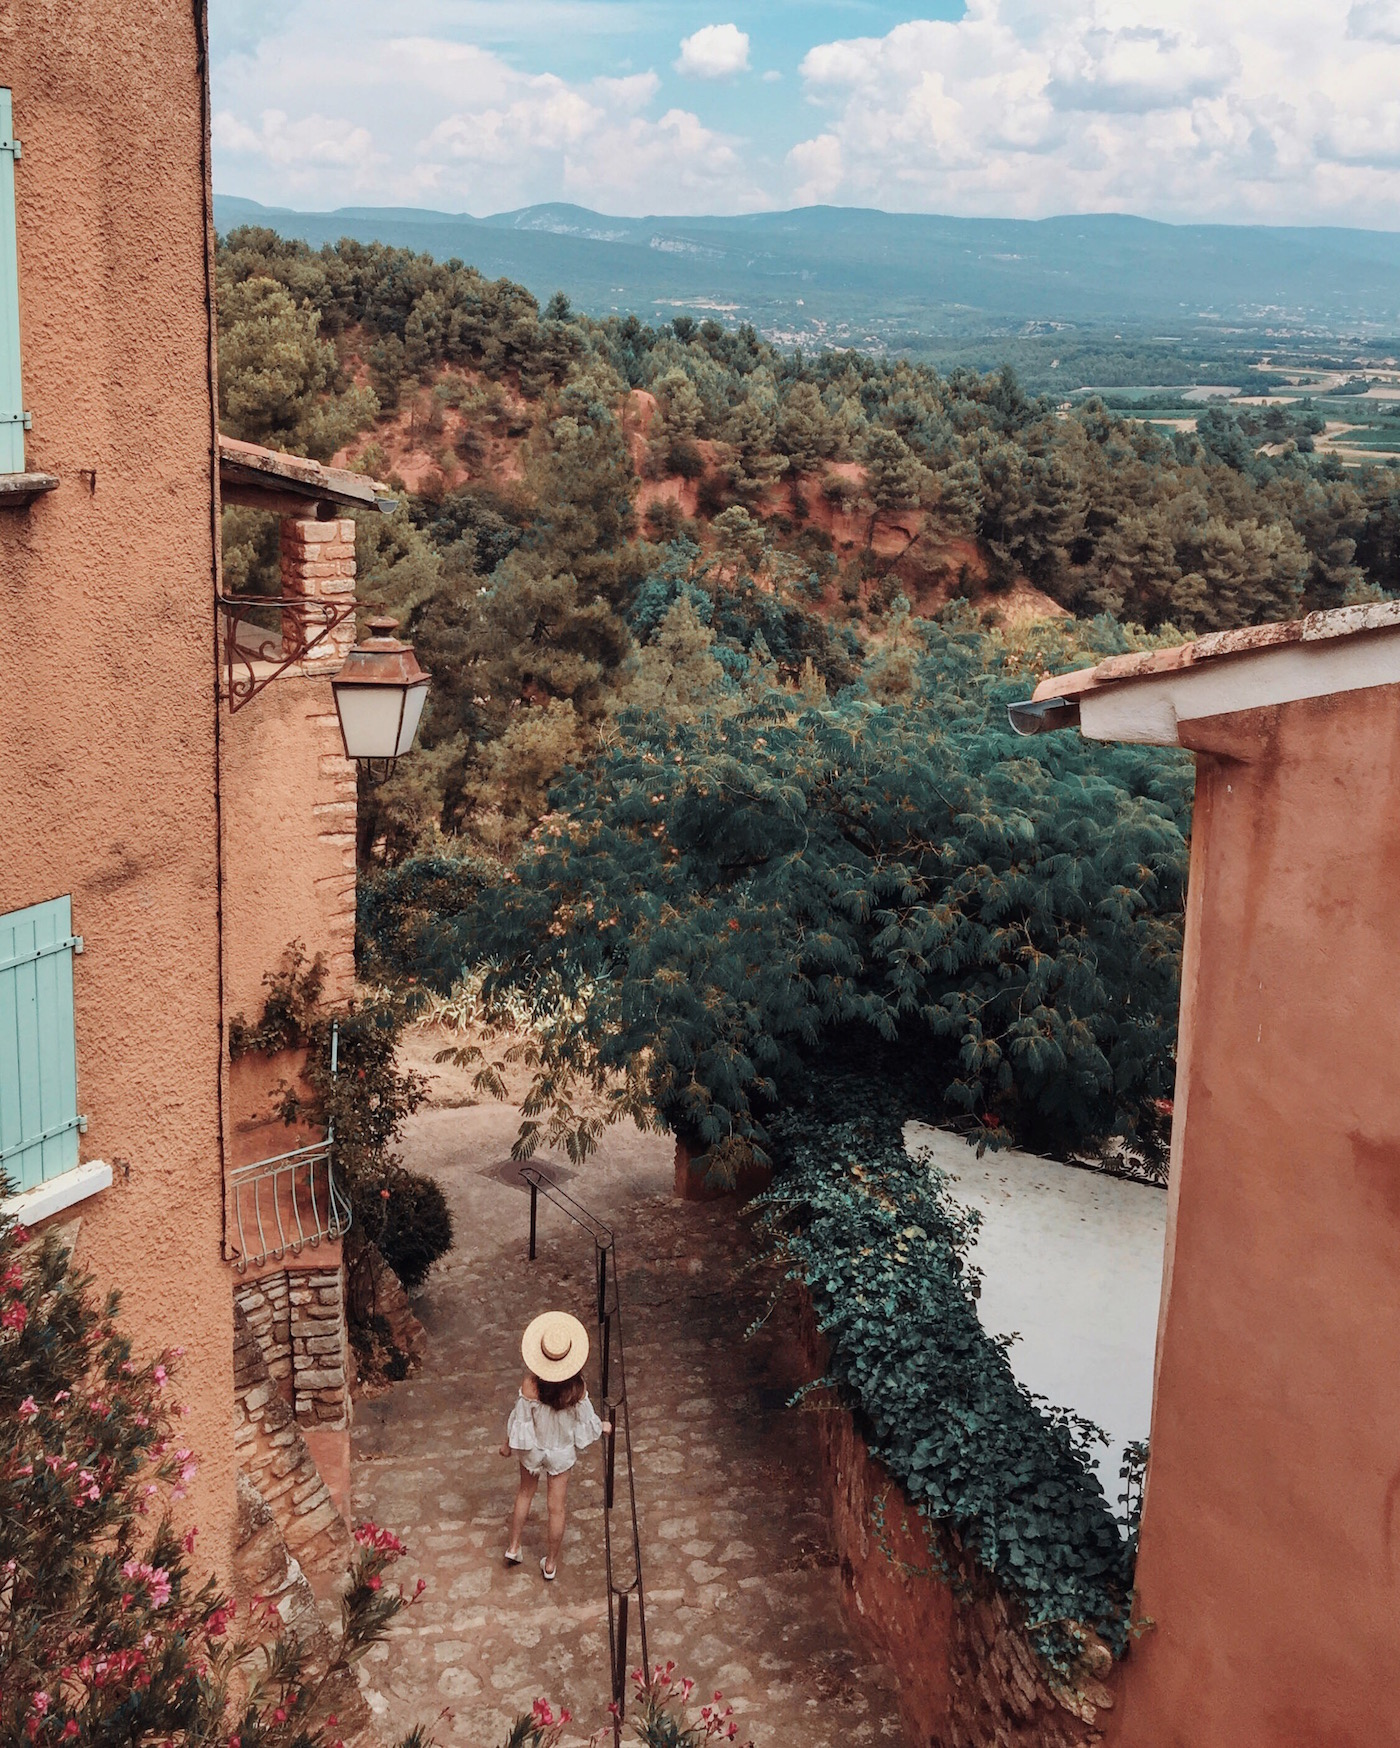 willabelle-ong-paledivision-street-style-fashion-travel-lifestyle-blog-australia-singapore-blogger-south-of-france-provence-roussillon-village-summer-spring-landscape